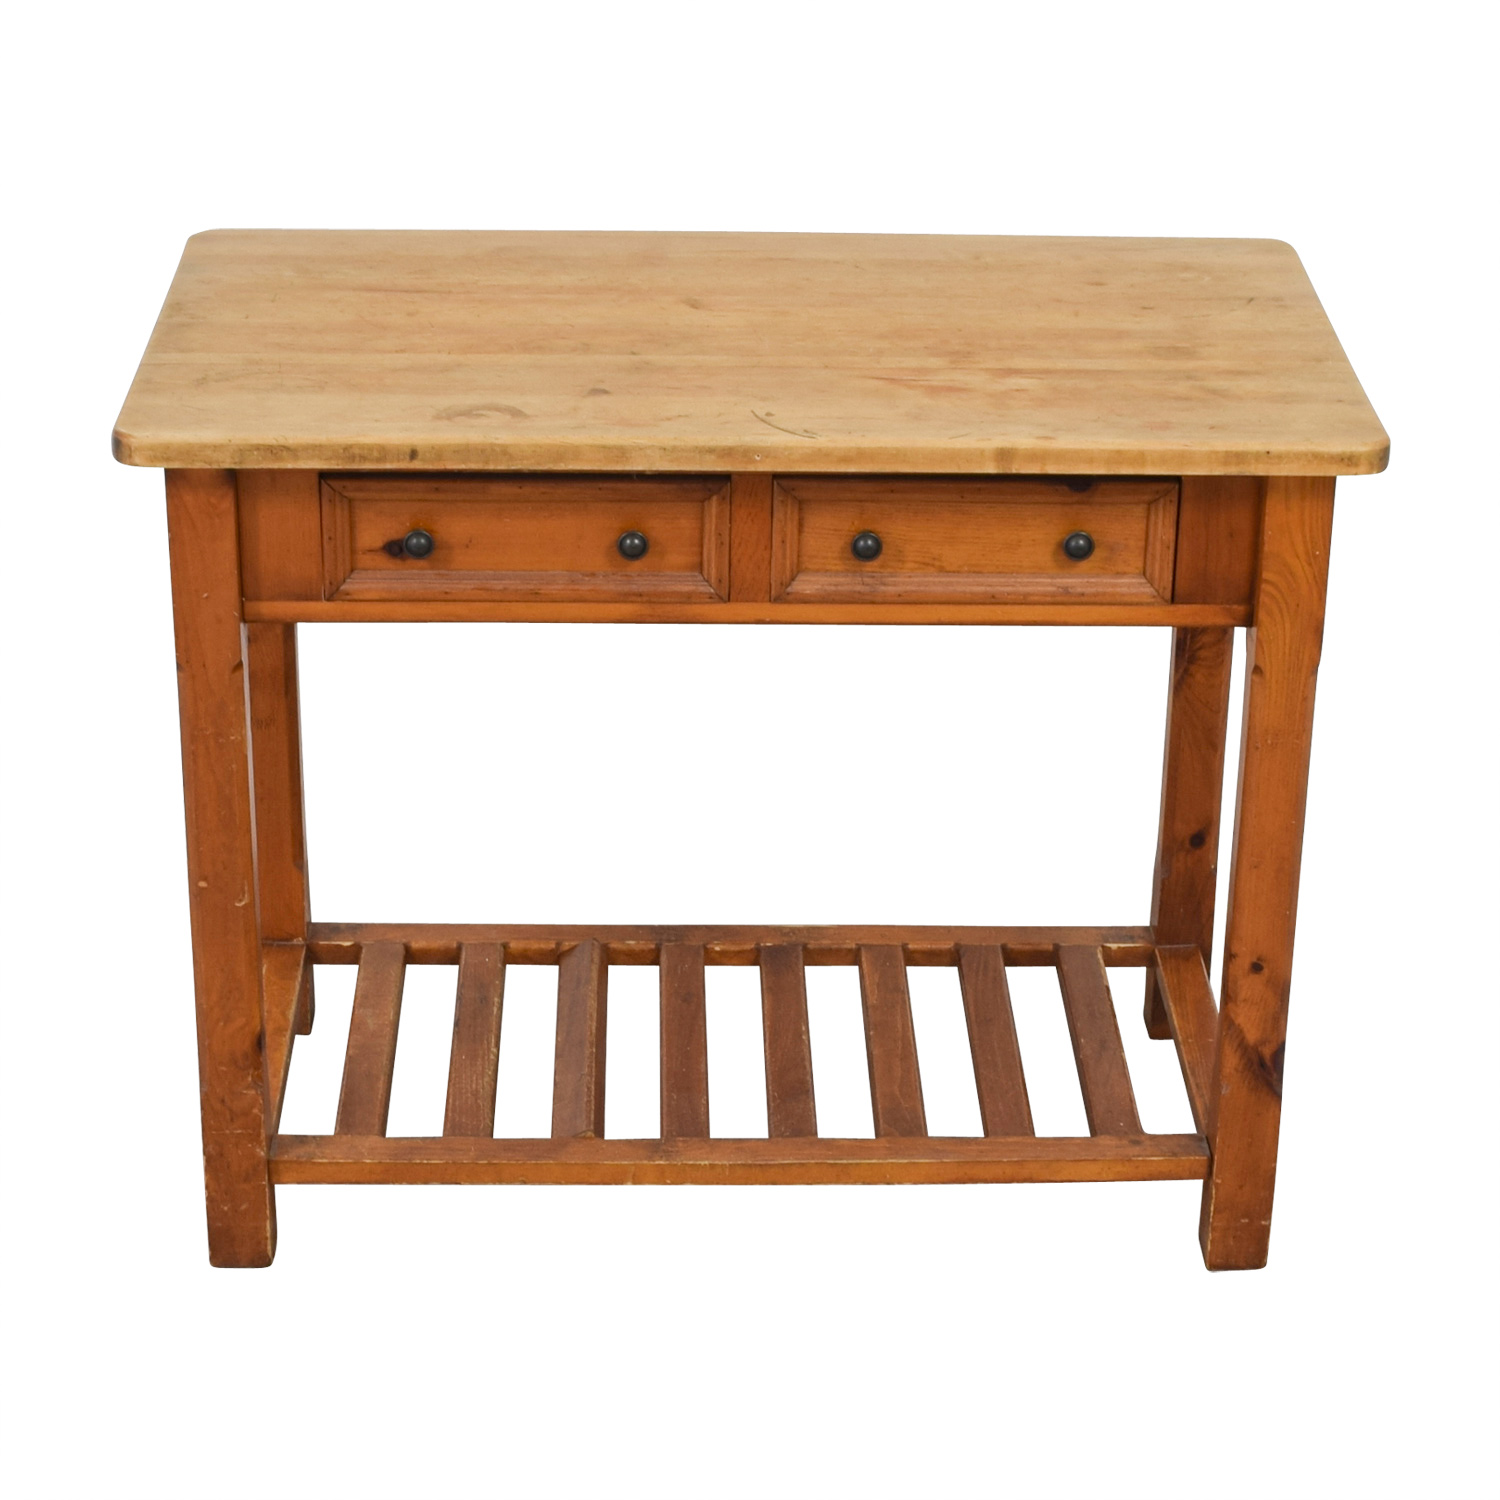 shop  Wooden Counter Table online